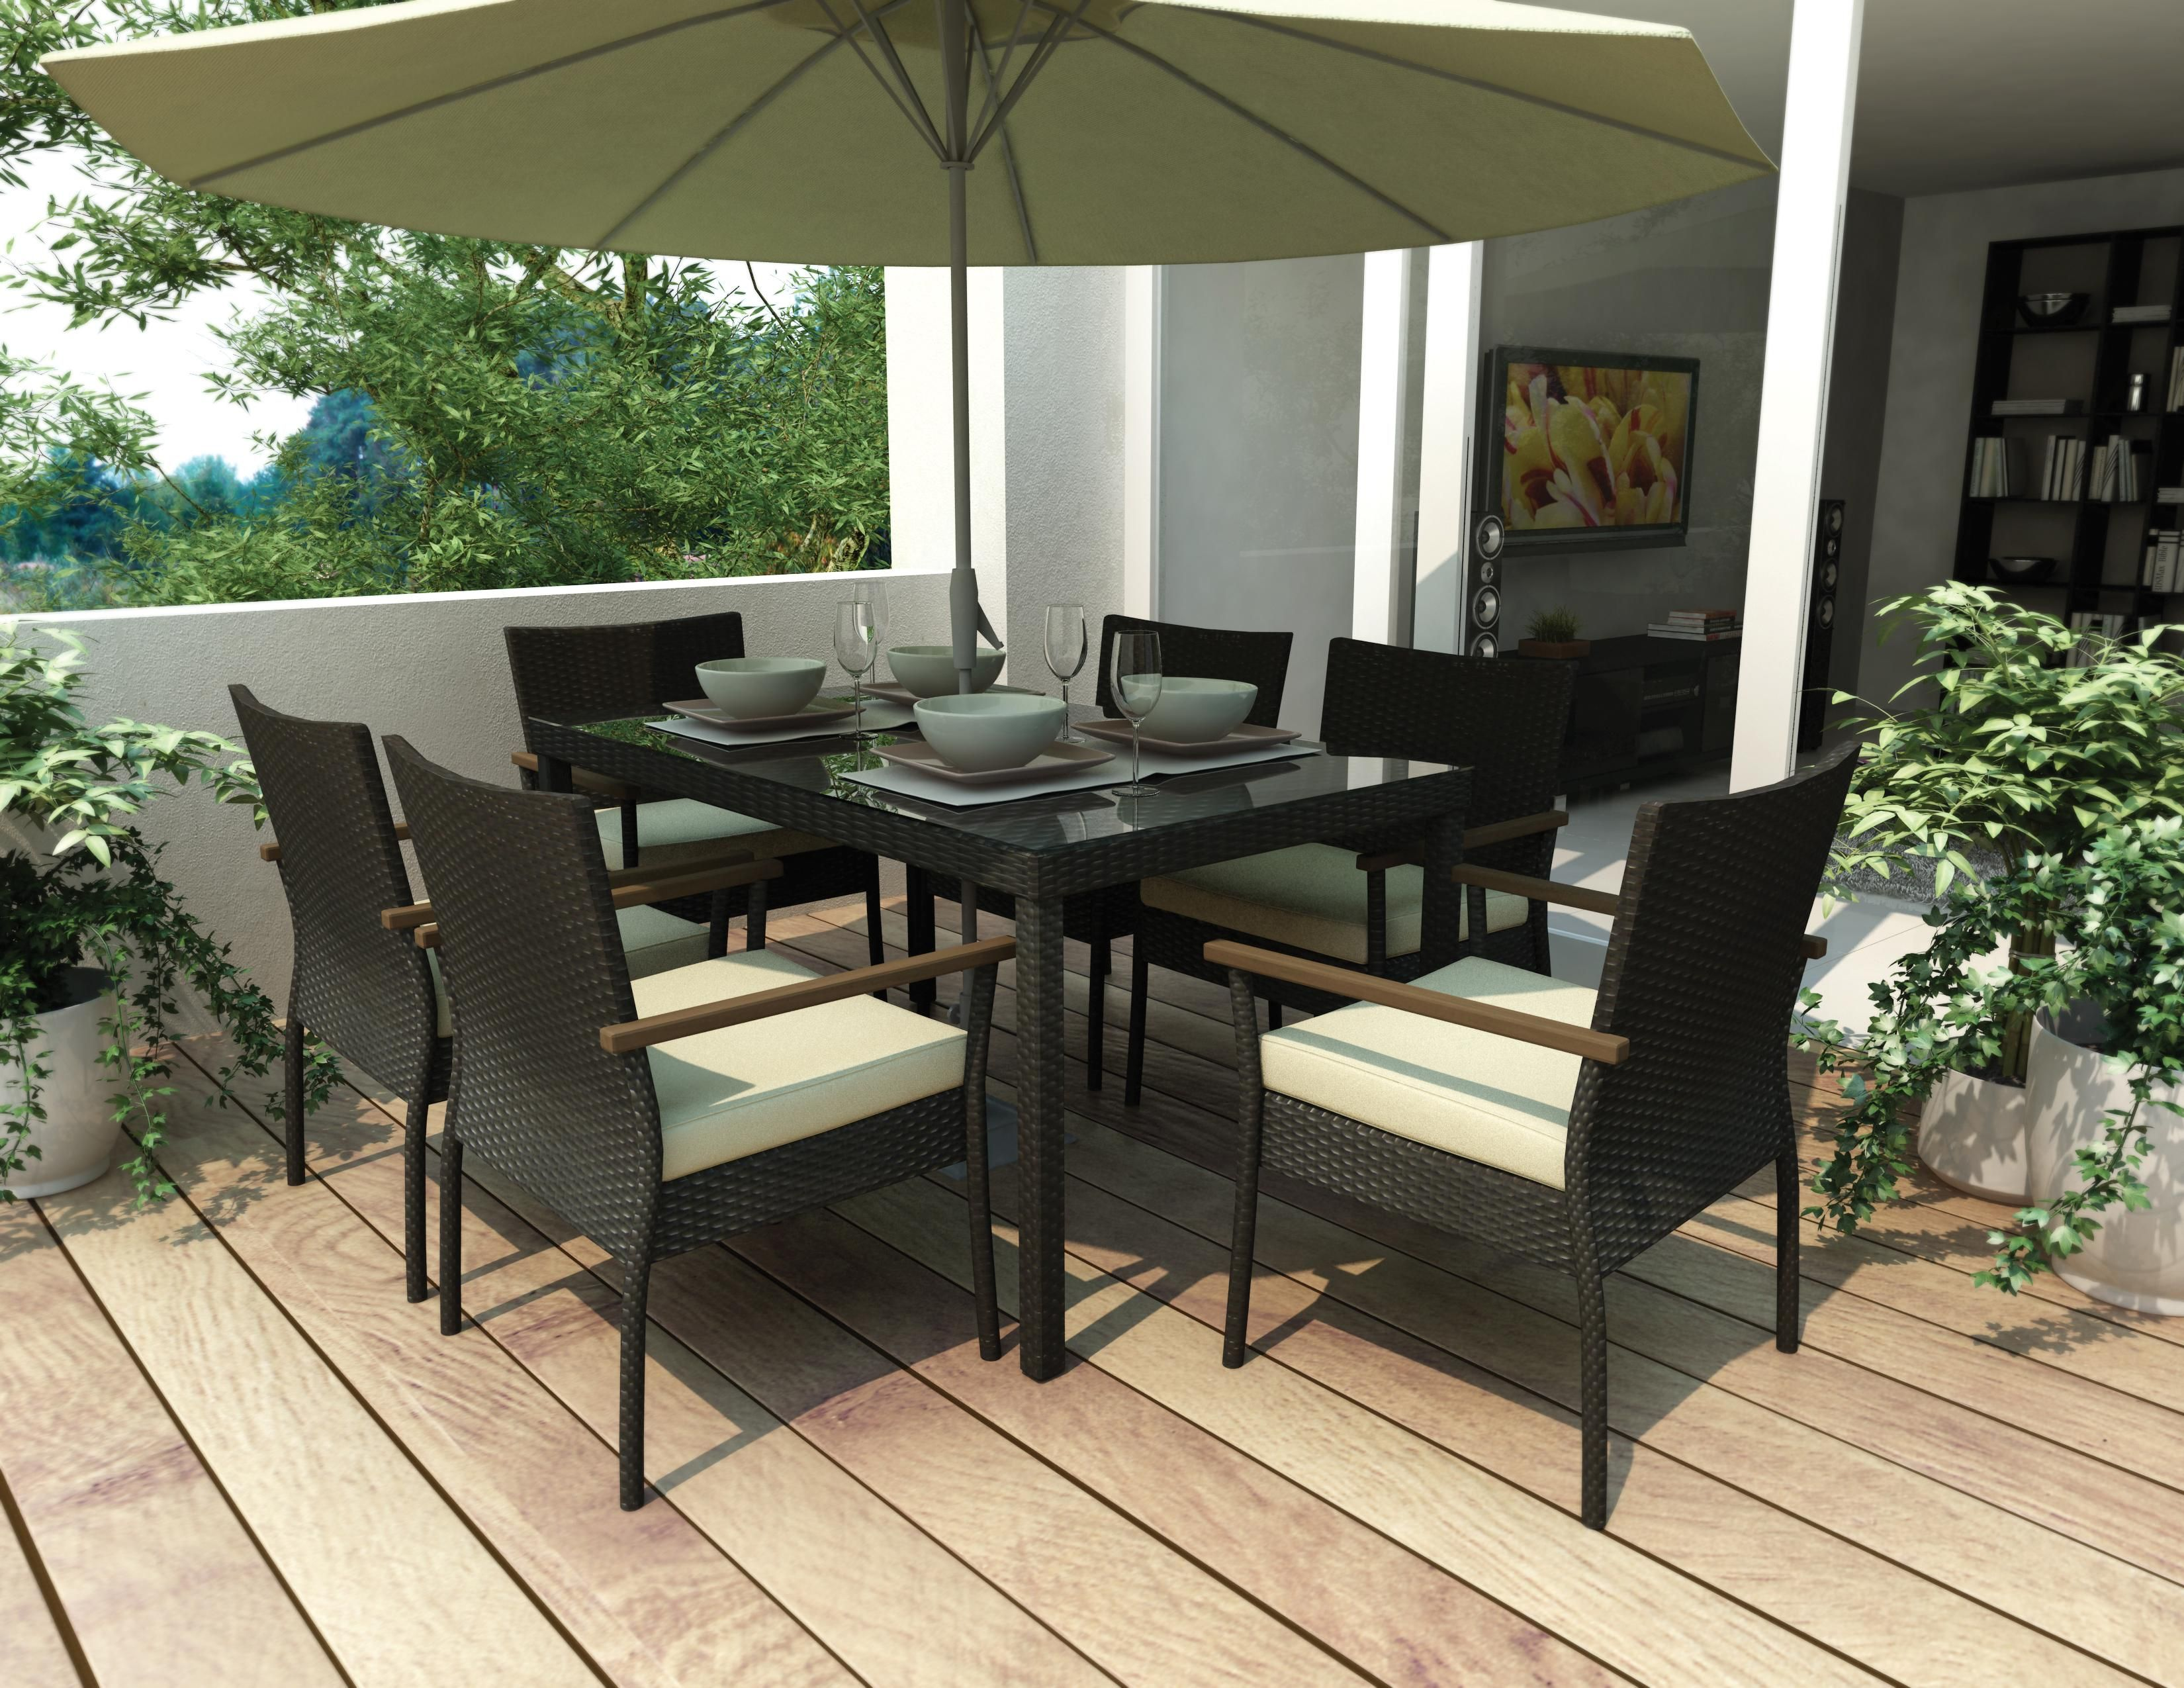 Patio Dining Sets For 4 on Dining Room Design Ideas